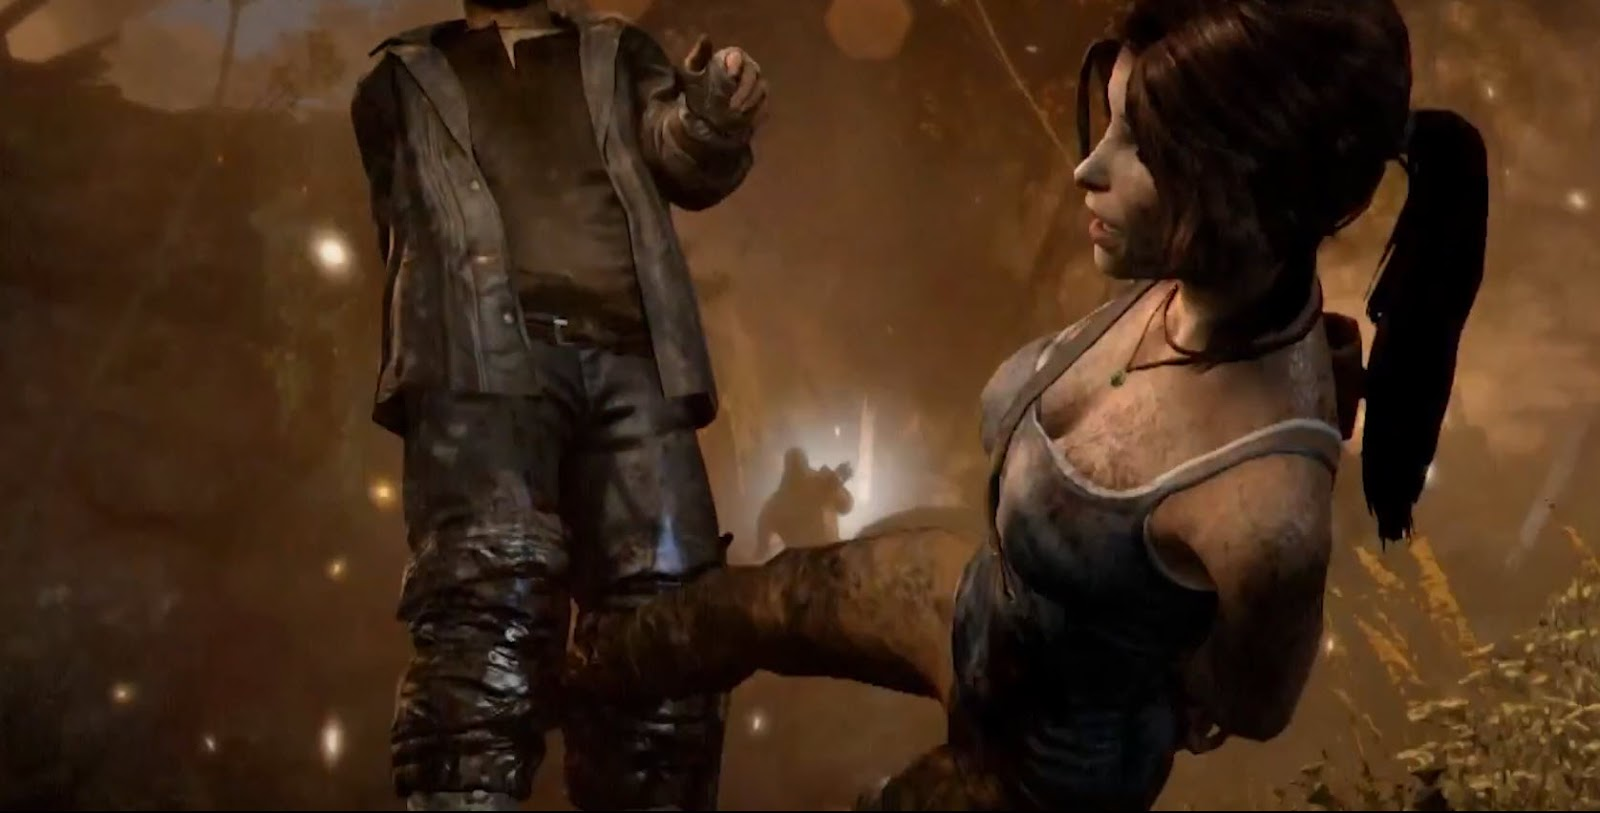 Tomb raider 2013 nude patch movies - 4 8